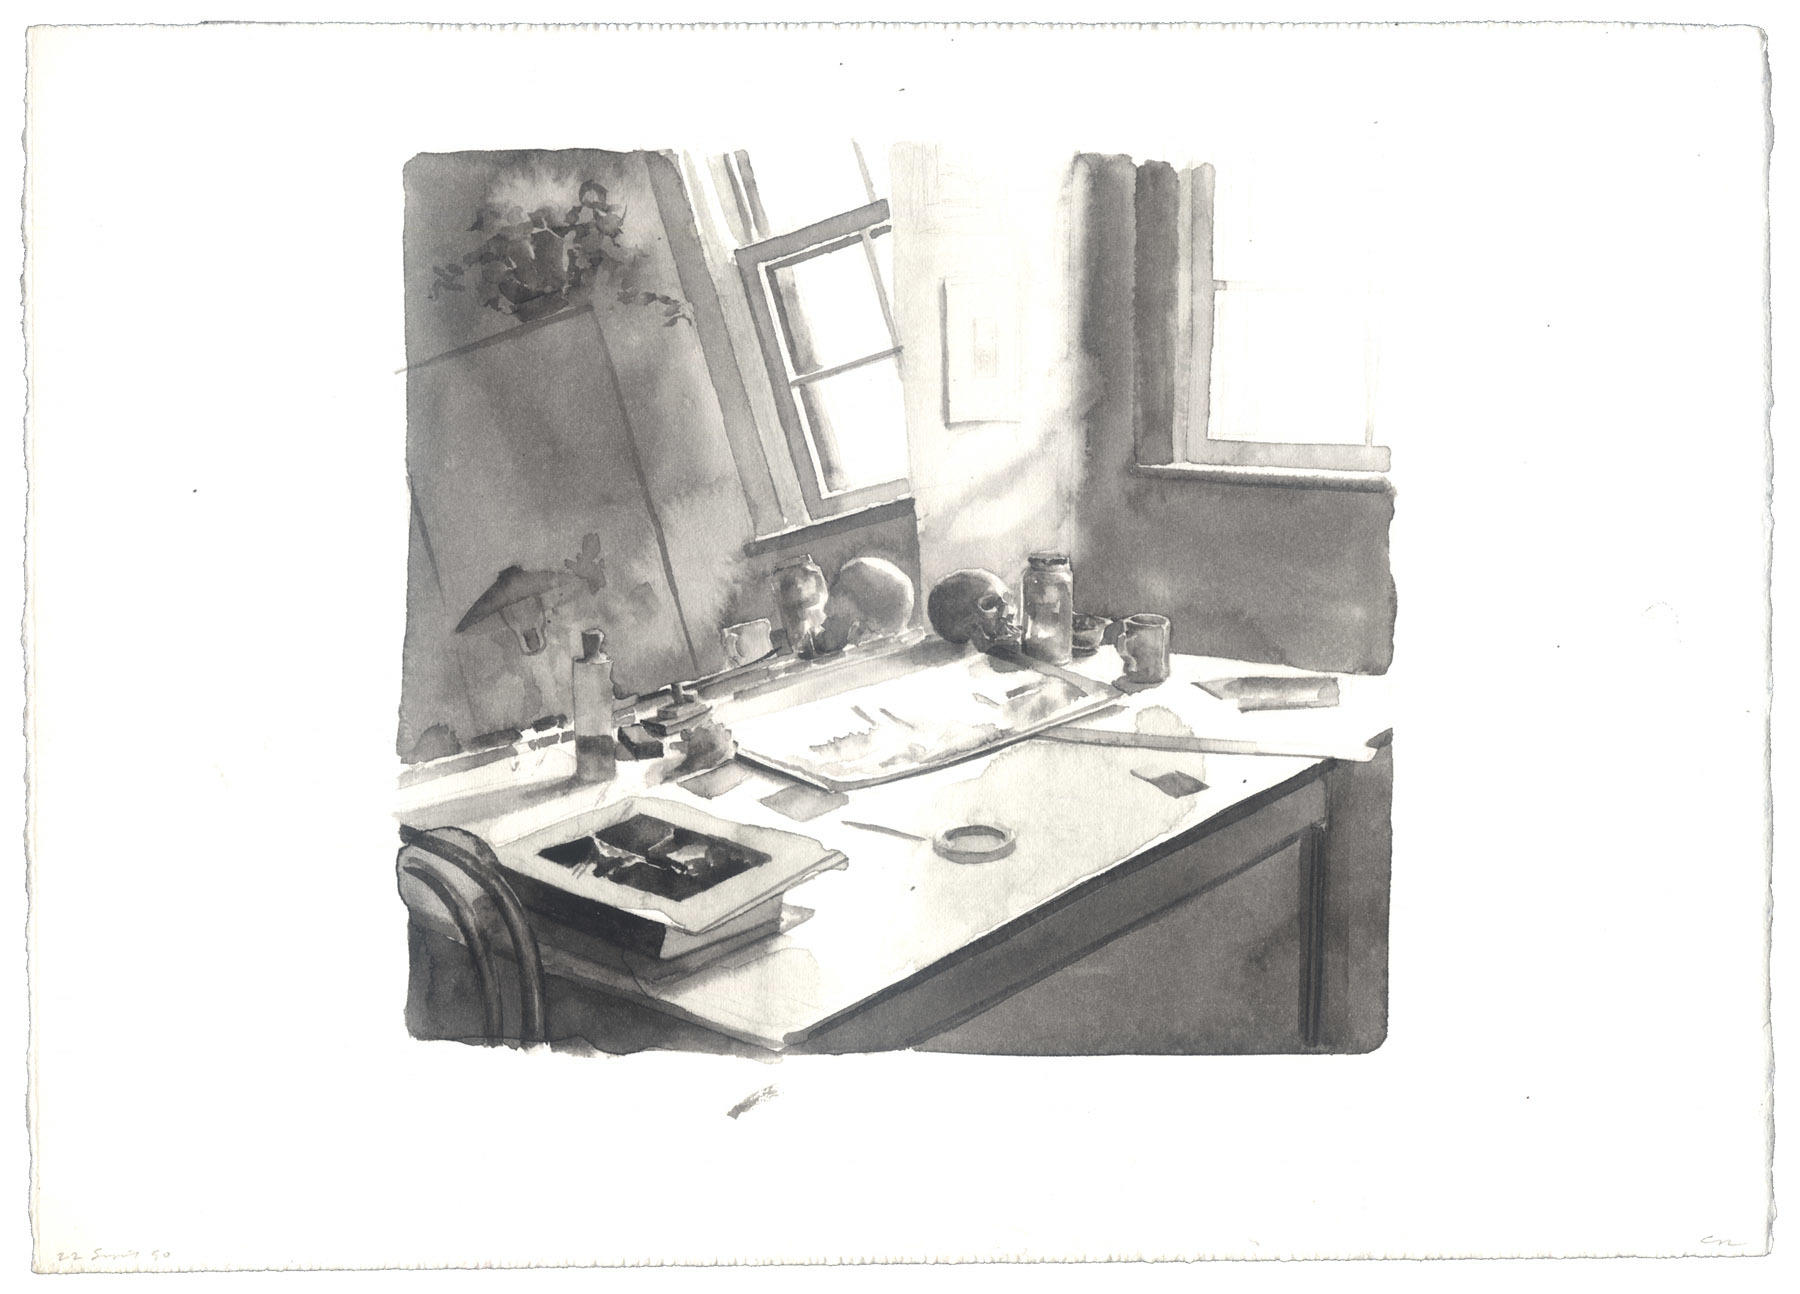 Worktable: 22 September 1990 image